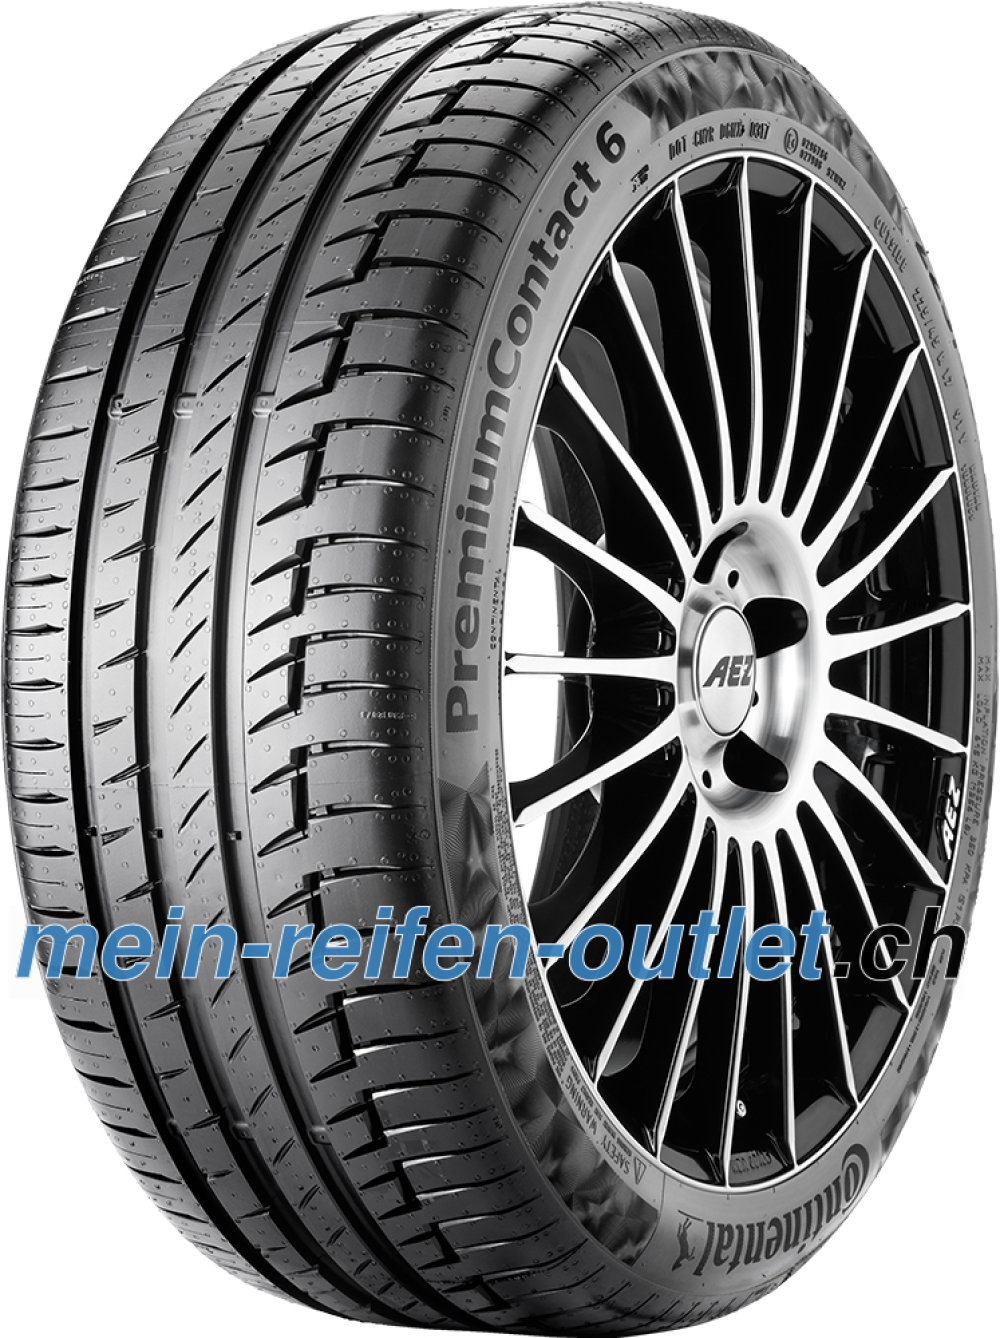 Continental PremiumContact 6 ( 225/45 R17 91V mit Felgenrippe )